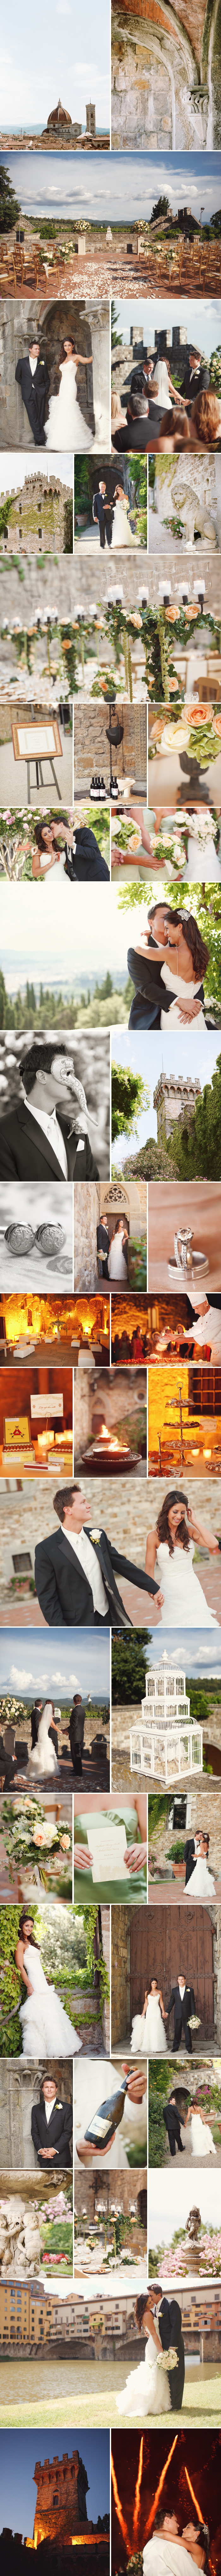 Beautiful details from a wedding in Florence Italy with fireworks, dancing, castle, ceremony